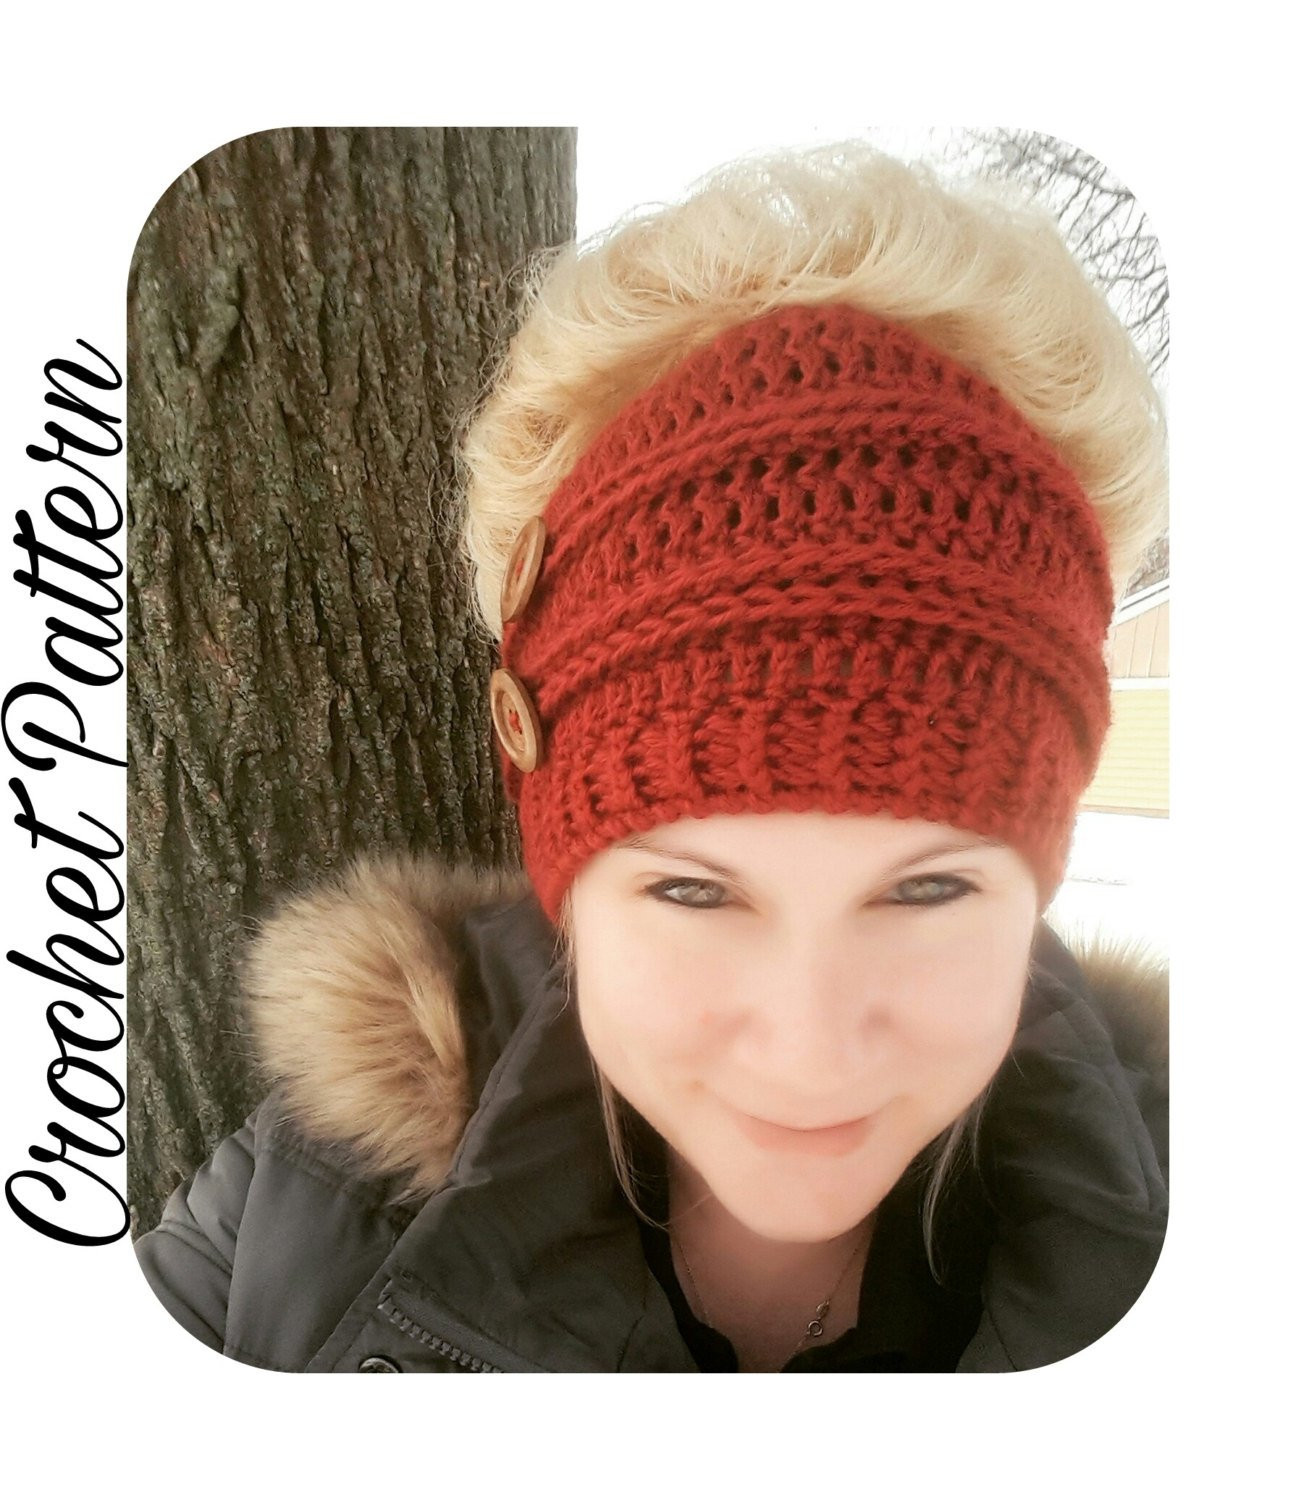 Crochet Messy Bun Beanie Lovely Crochet Pattern Messy Bun Beanie Crochet Pattern Bun Hat Of New 43 Photos Crochet Messy Bun Beanie